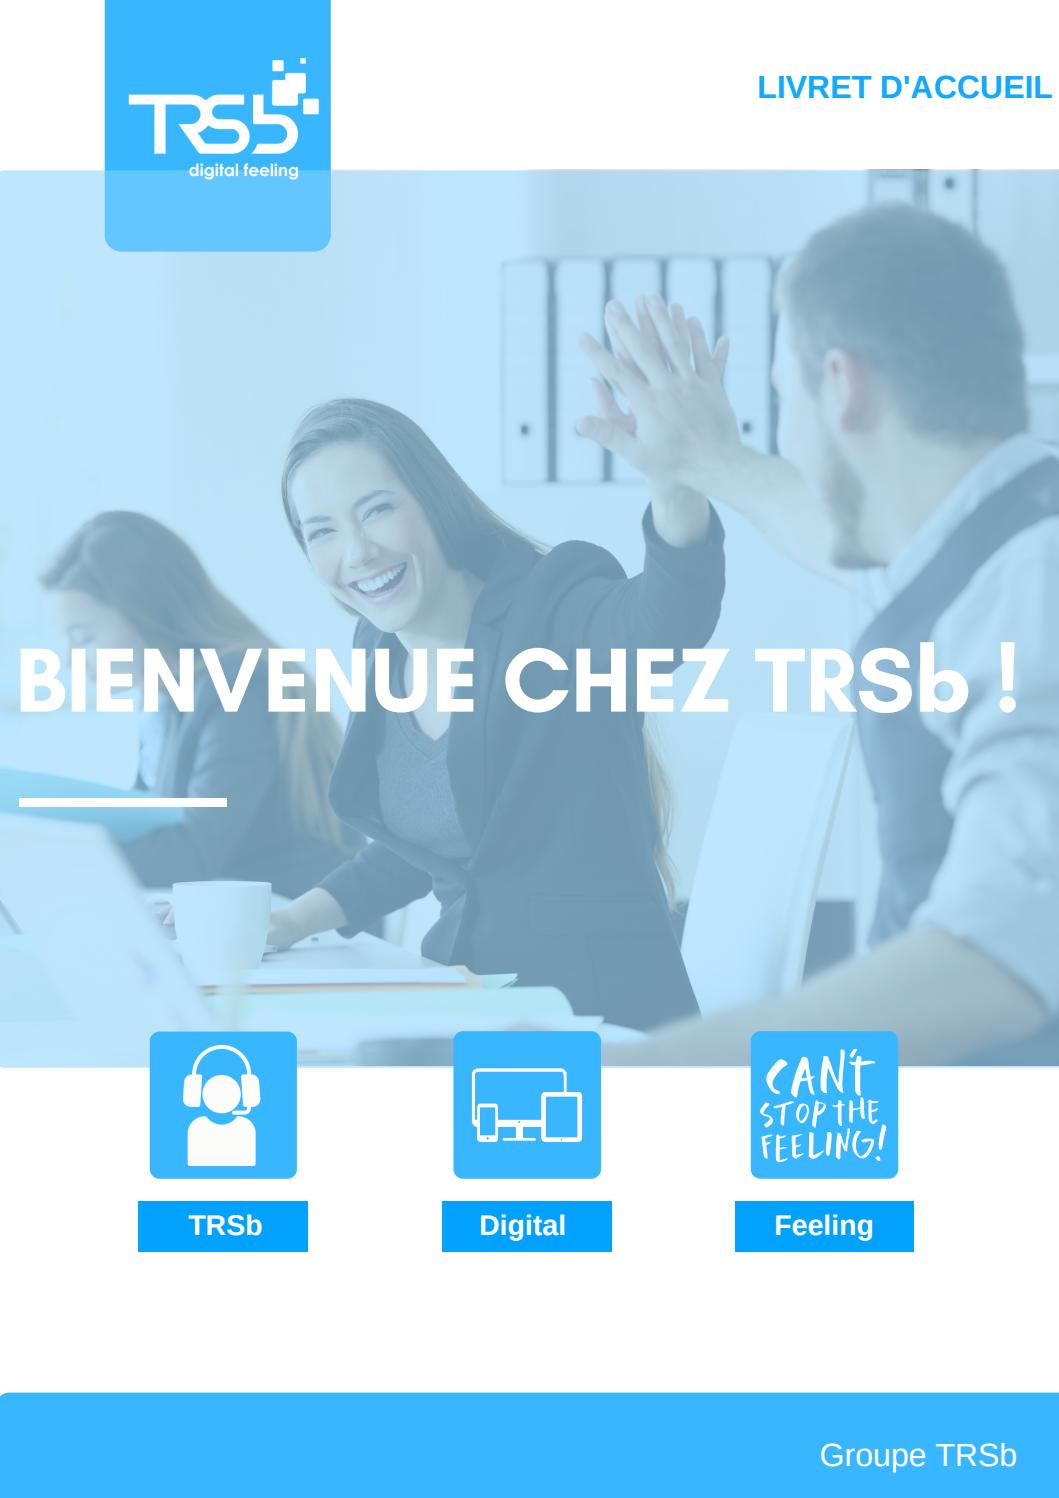 Livret d'accueil TRSb by trsb   issuu